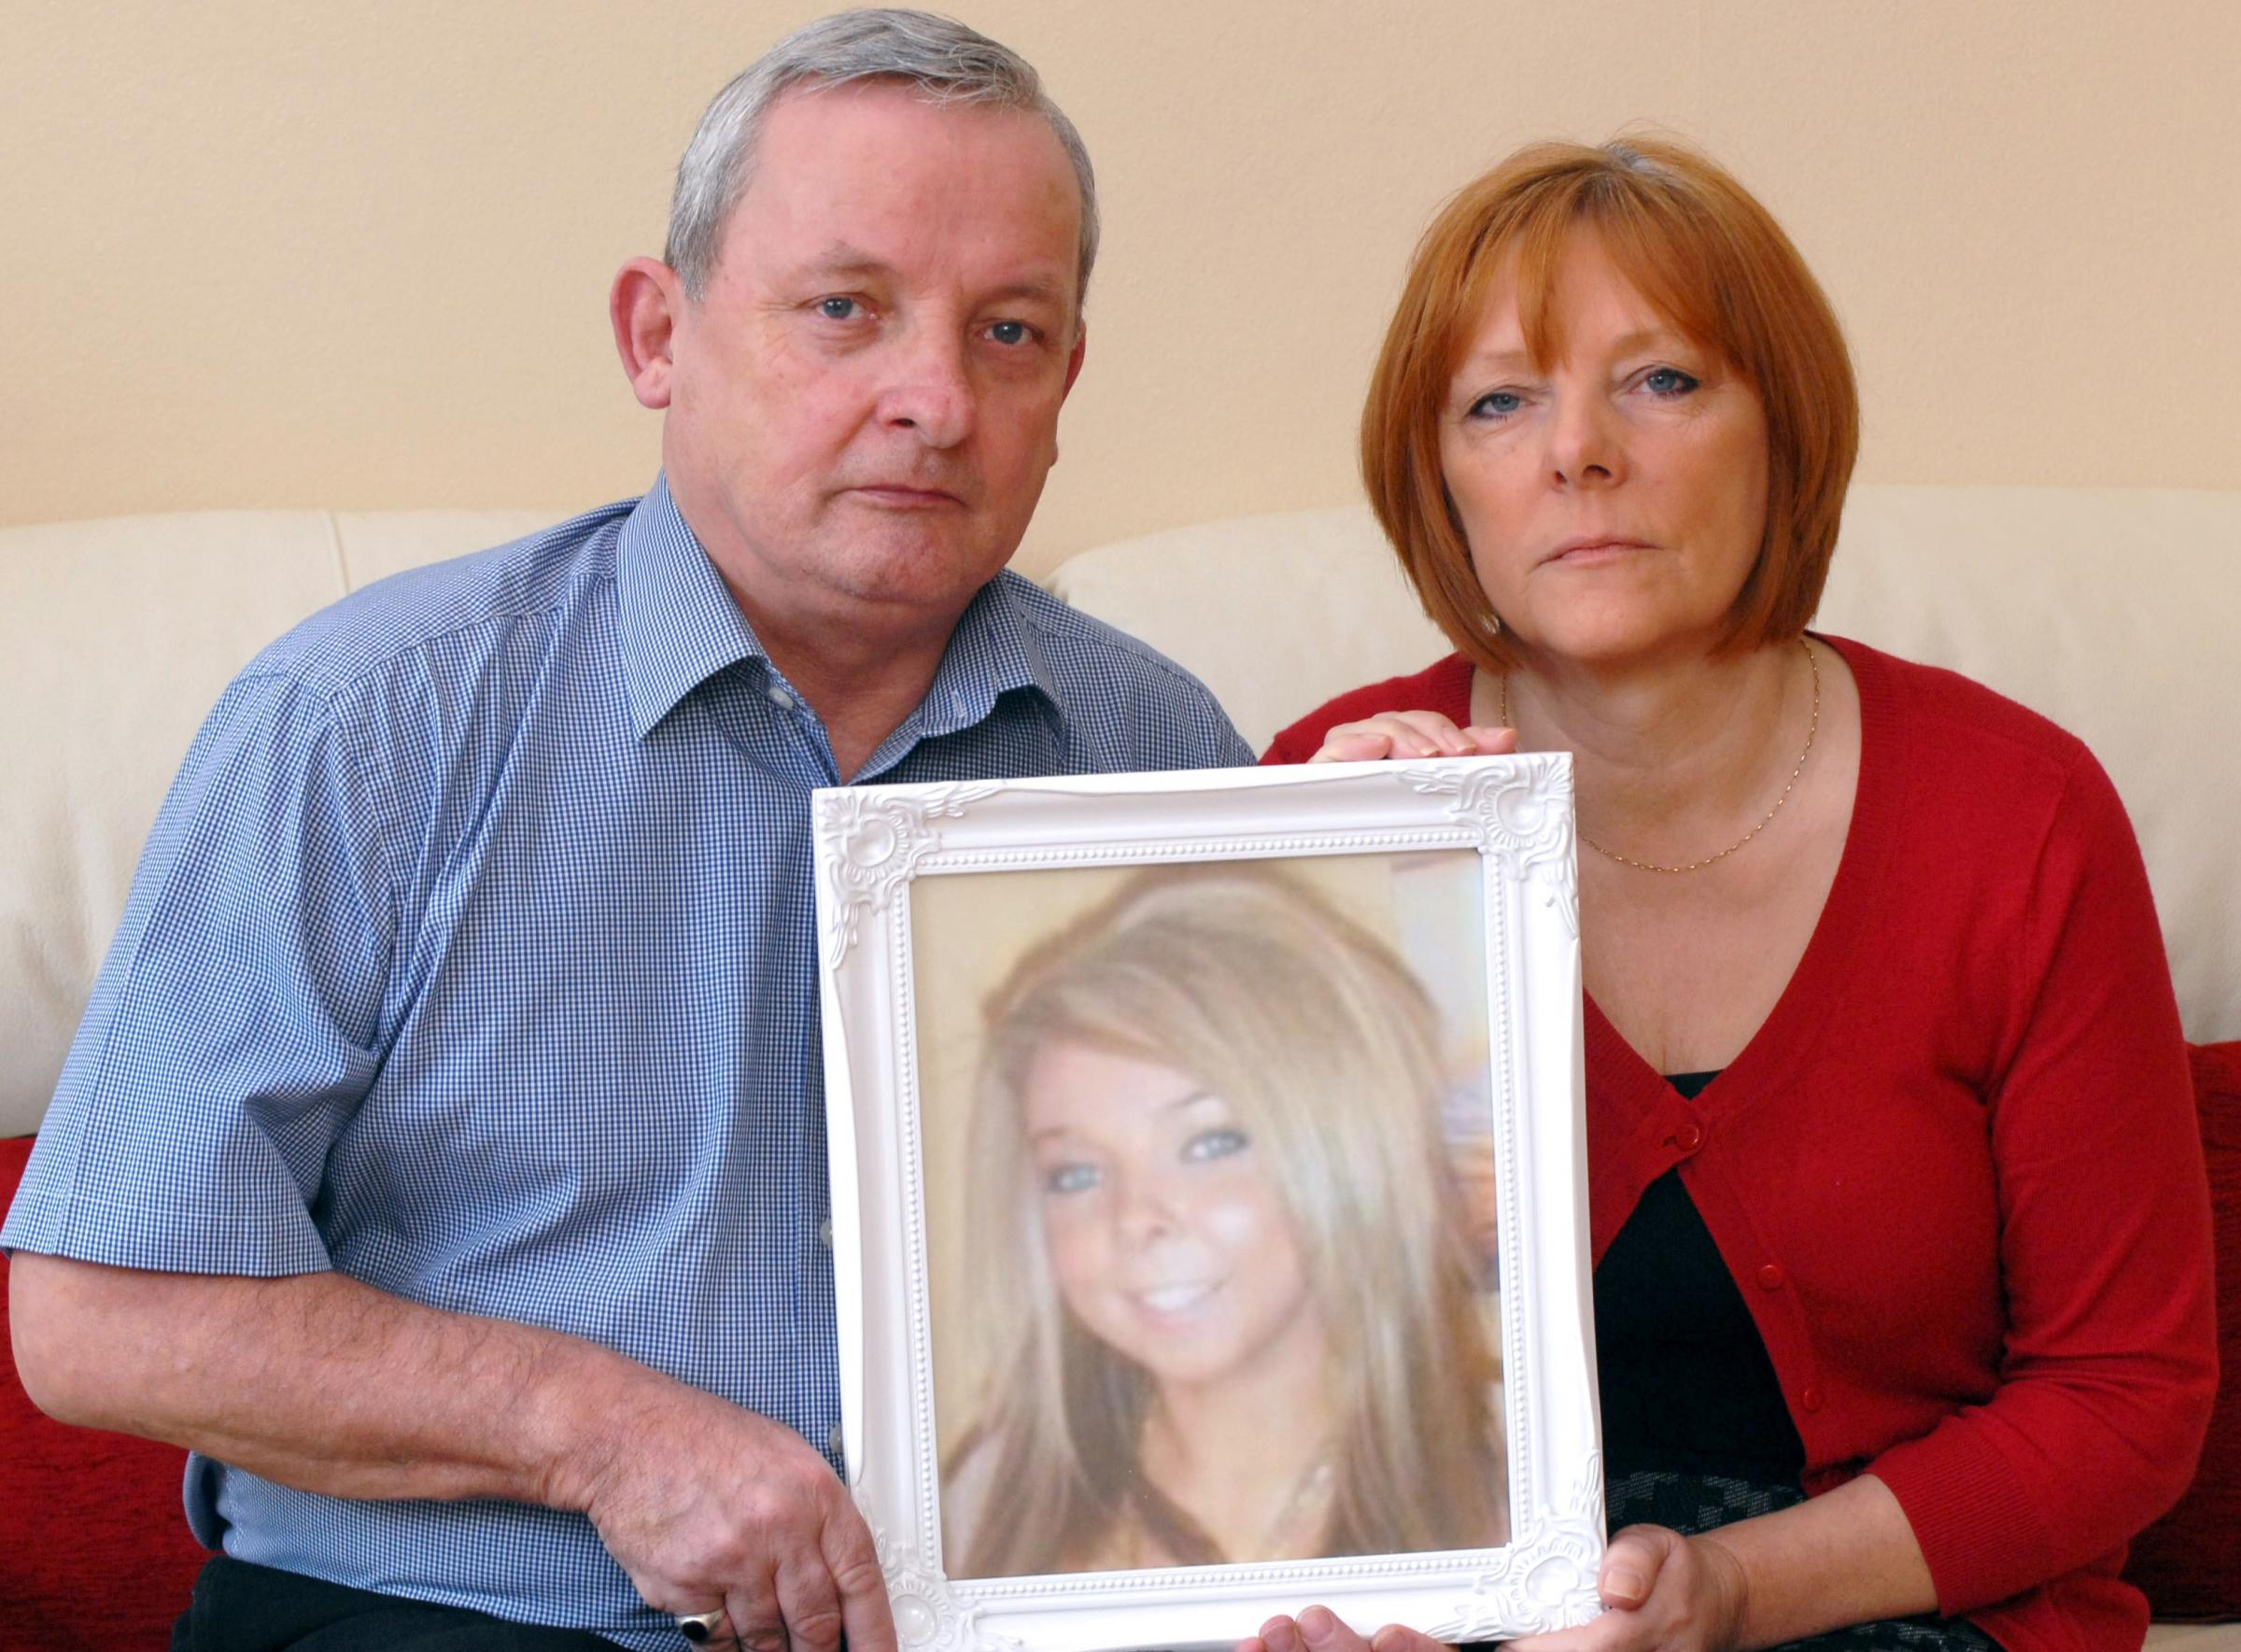 Heartbroken: Eric and Lynn Harvey with a picture of their daughter Vickie.